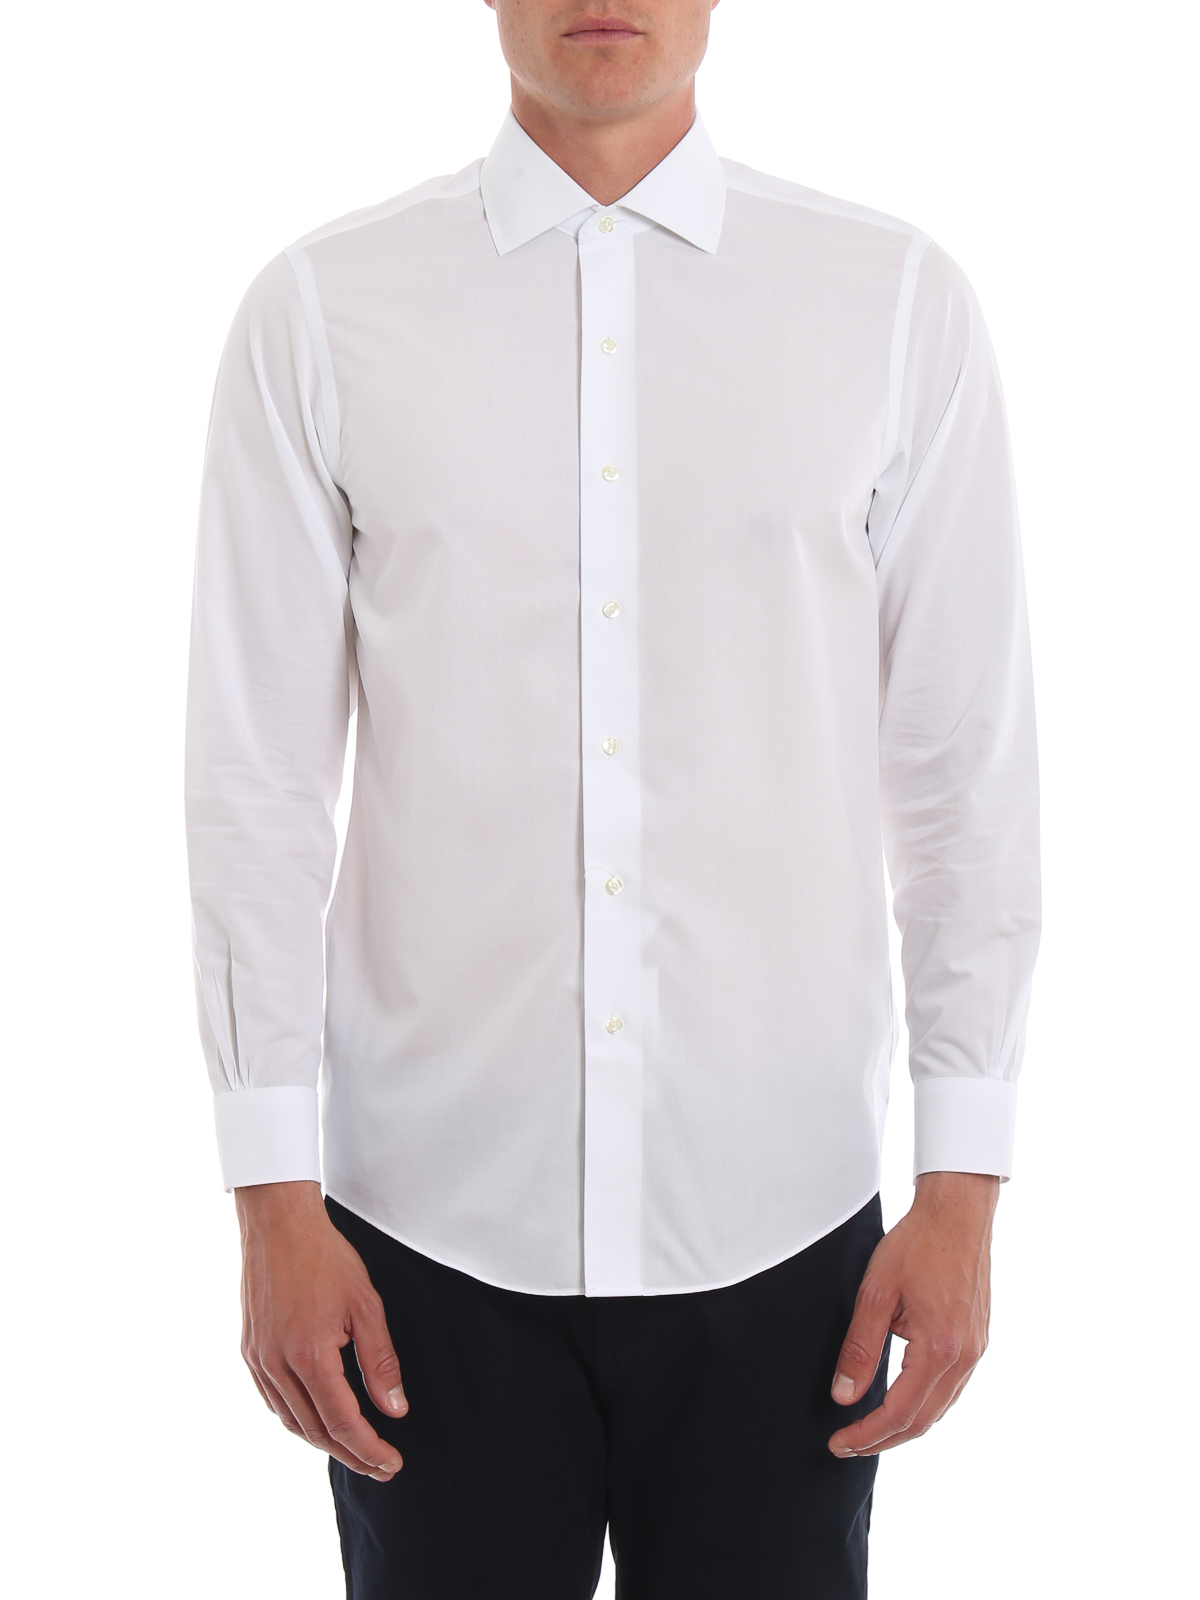 factory authentic best cheap popular brand Brooks Brothers - Chemise - Blanc - Chemises - 421120010047 ...